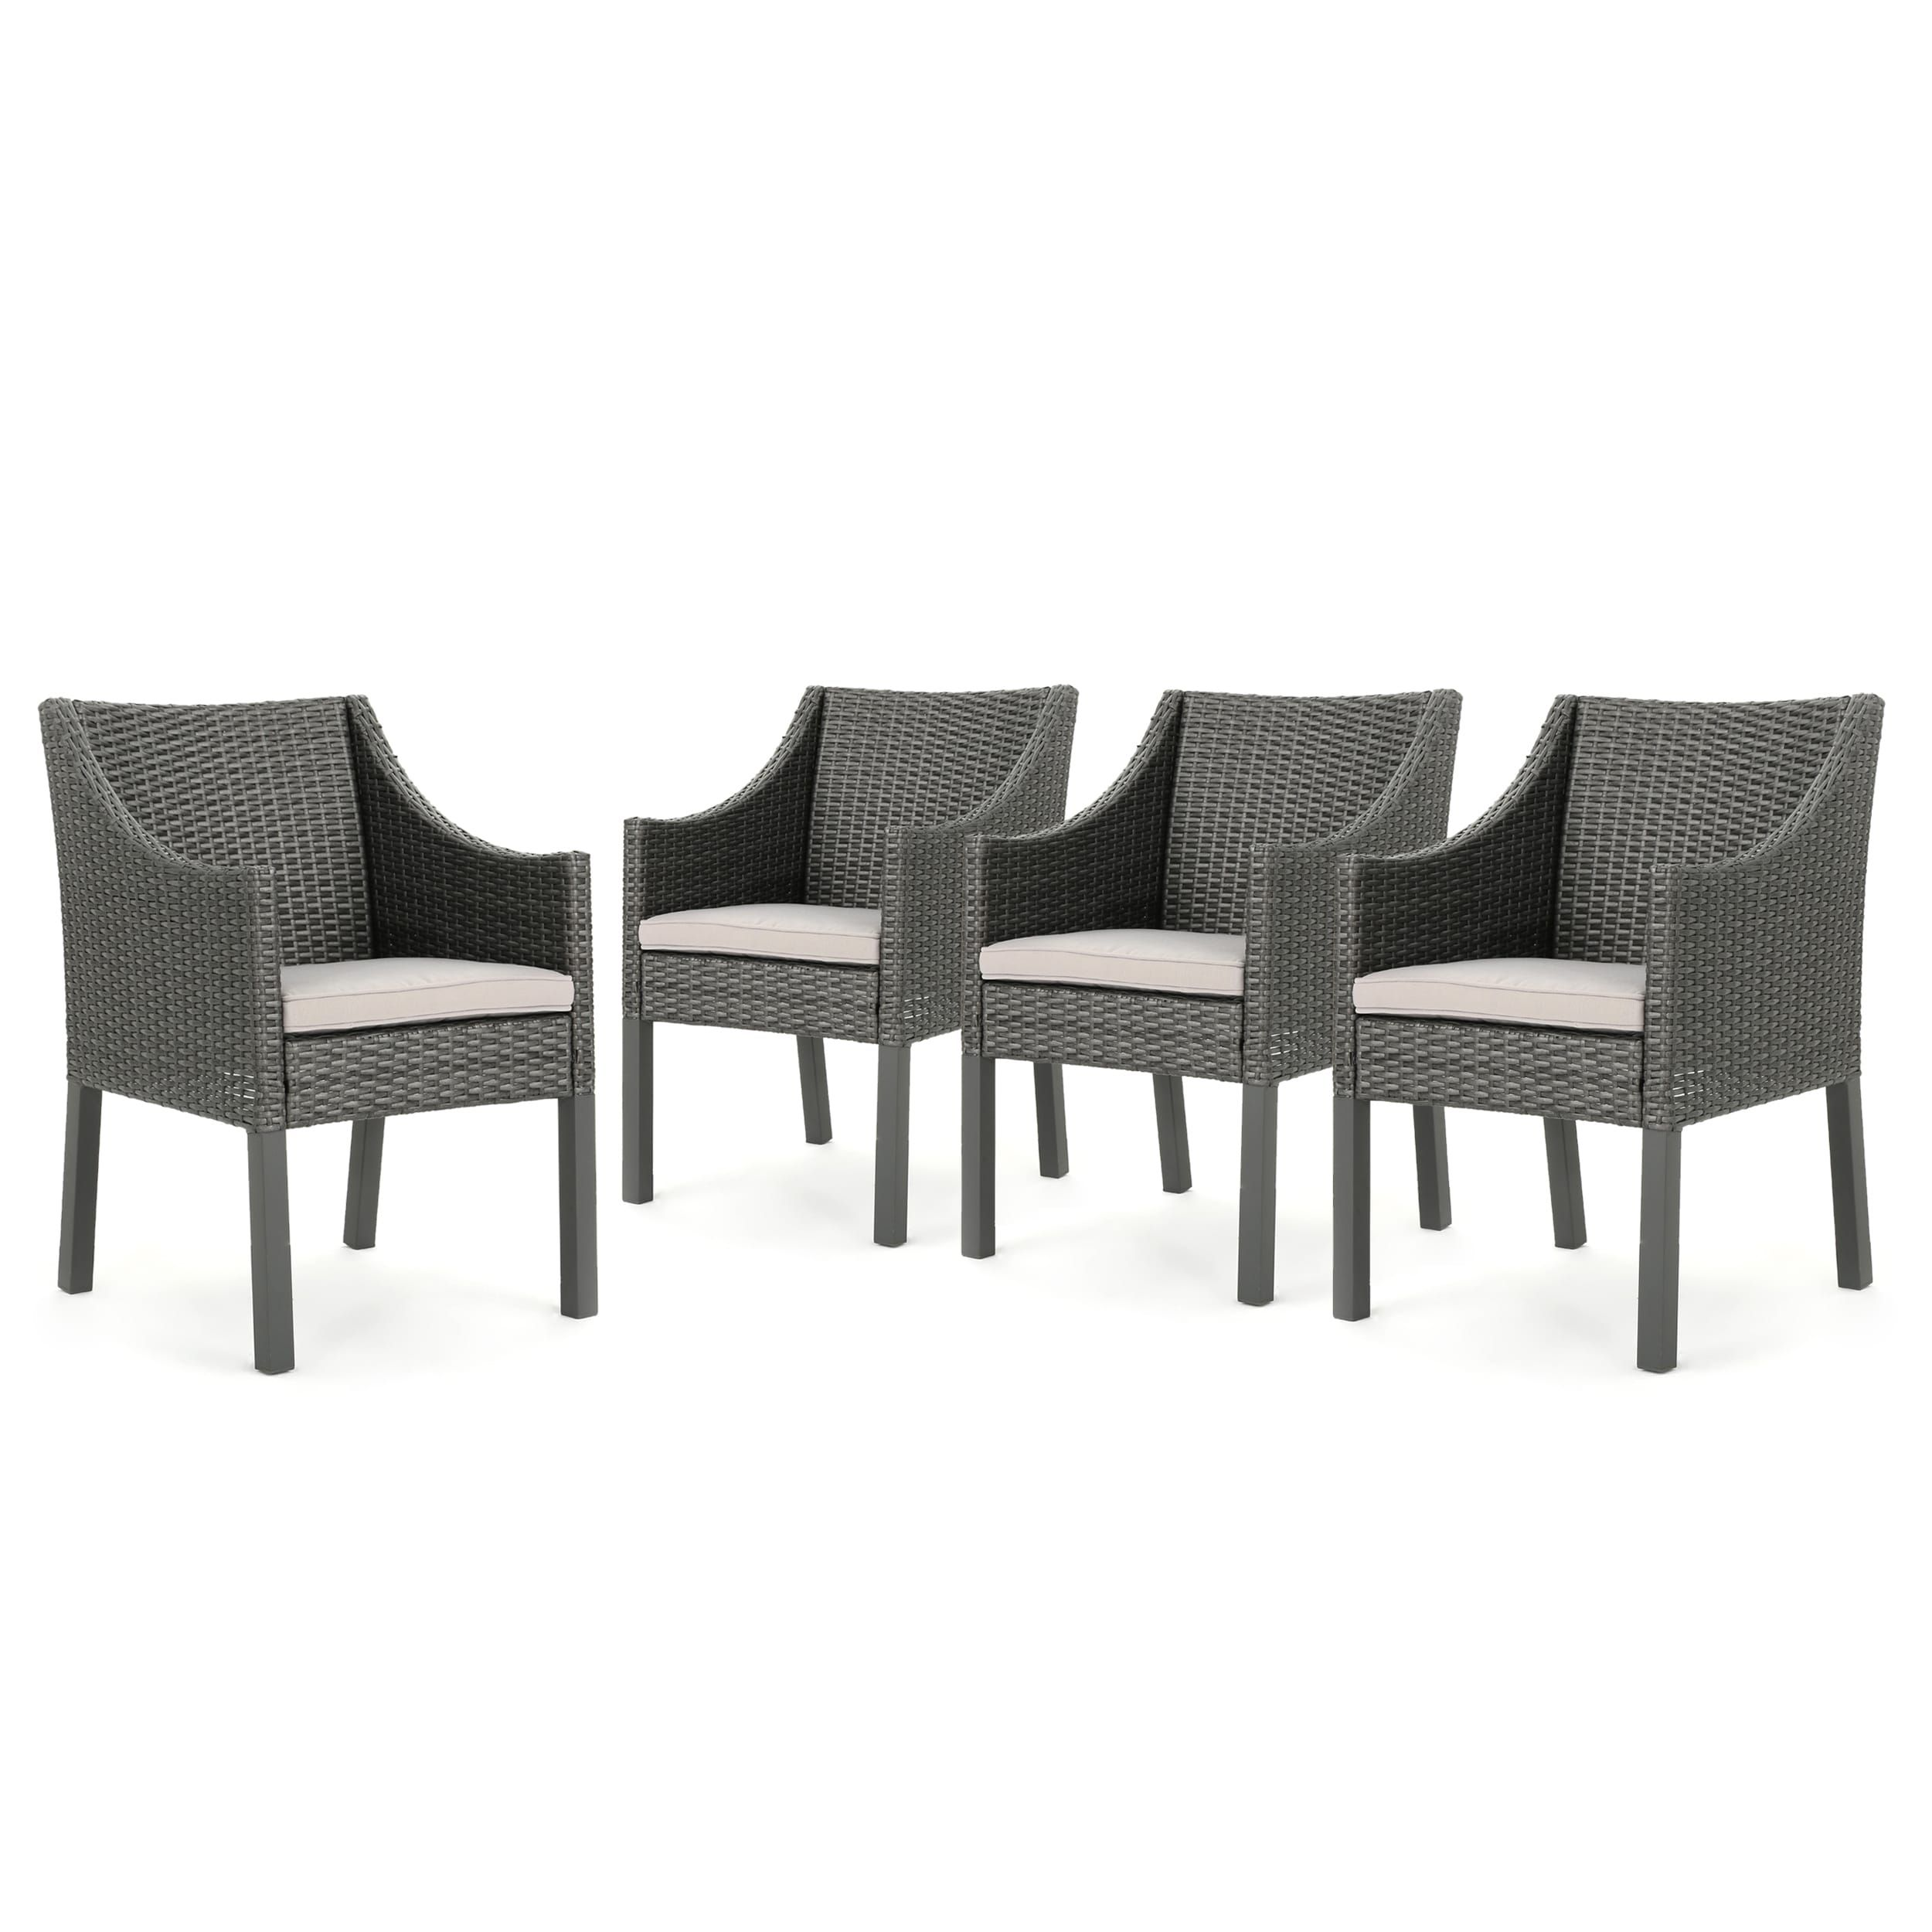 Antibes Outdoor Wicker Dining Chair With Cushions Set Of 4 By